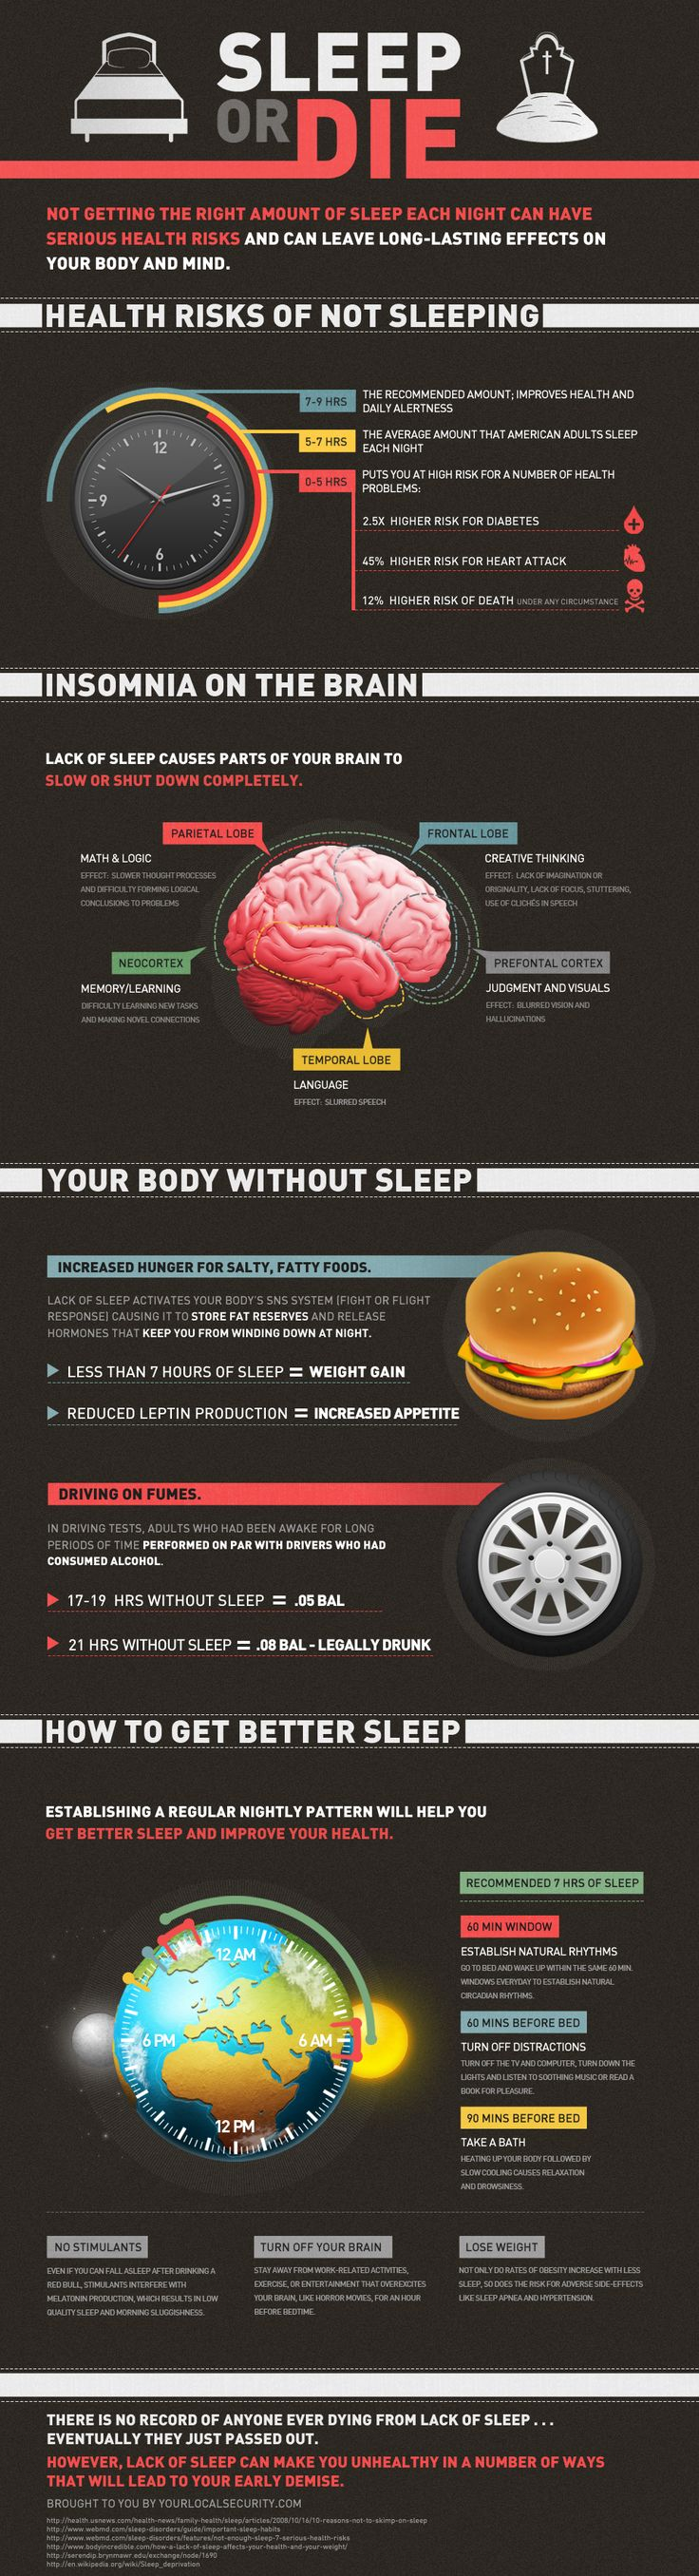 Did you know that a lack of sleep can slowly kill you?